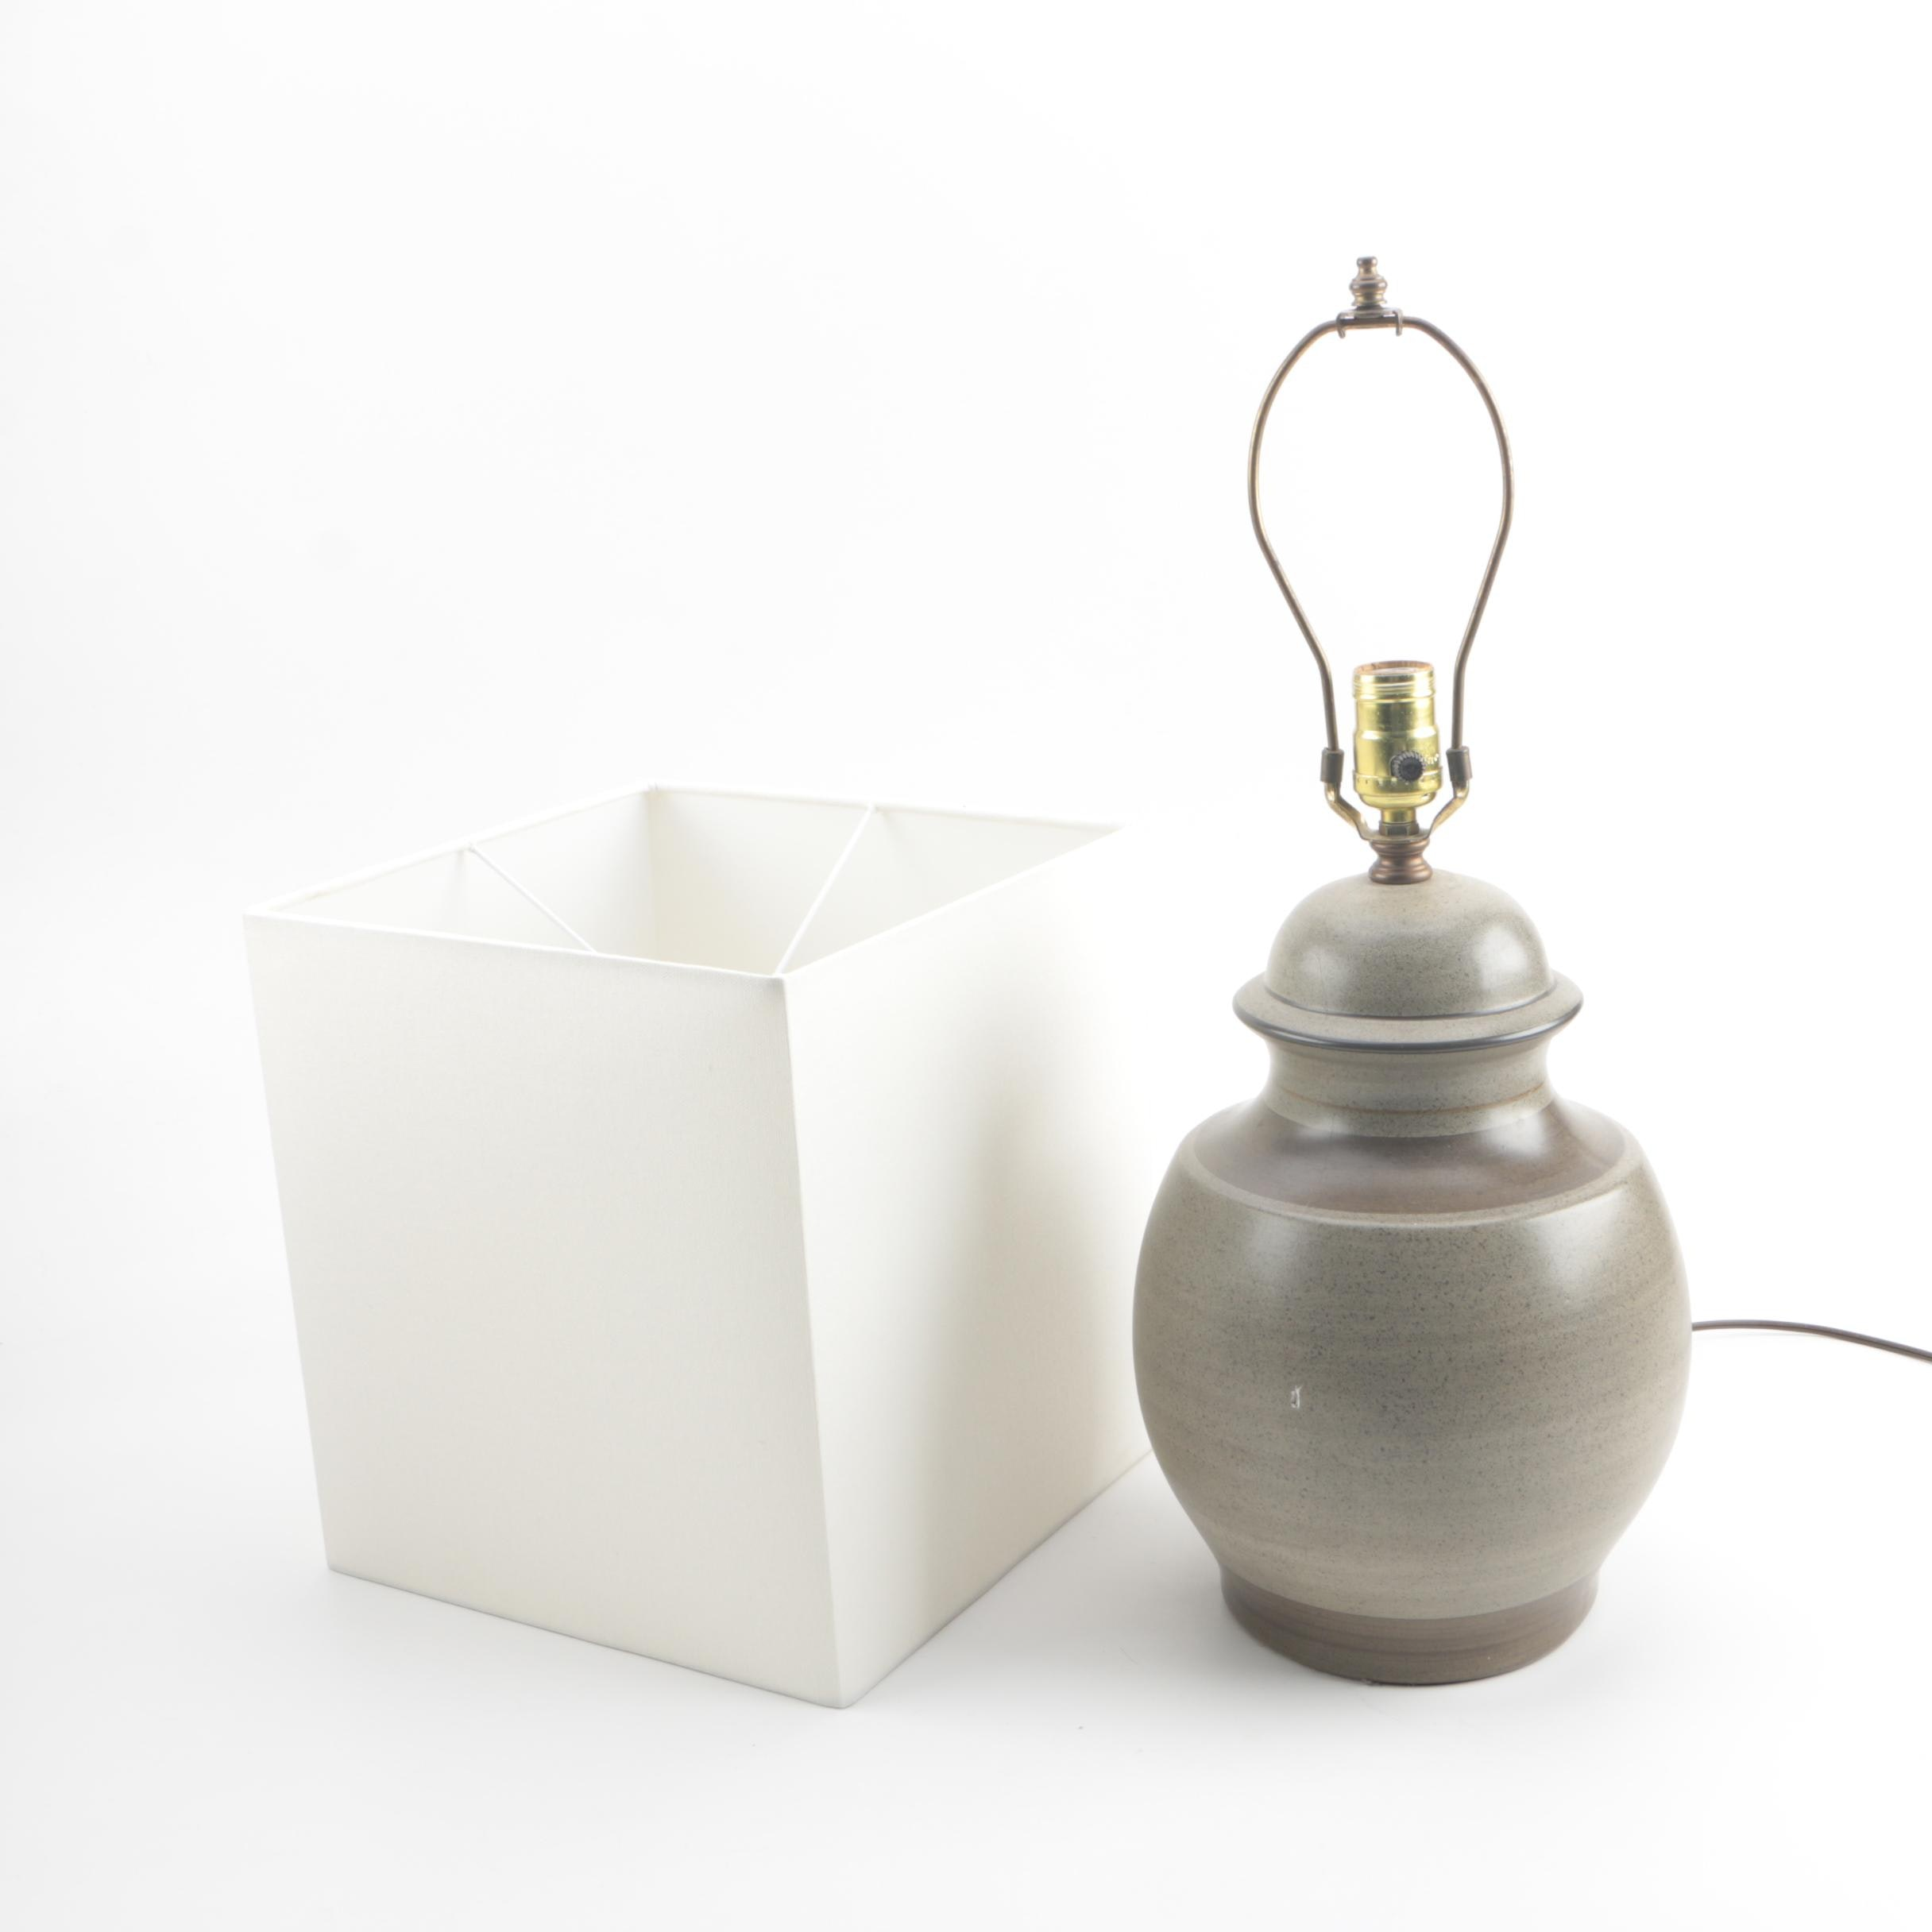 Brown and Grey Ceramic Table Lamp with White Fabric Square Lampshade